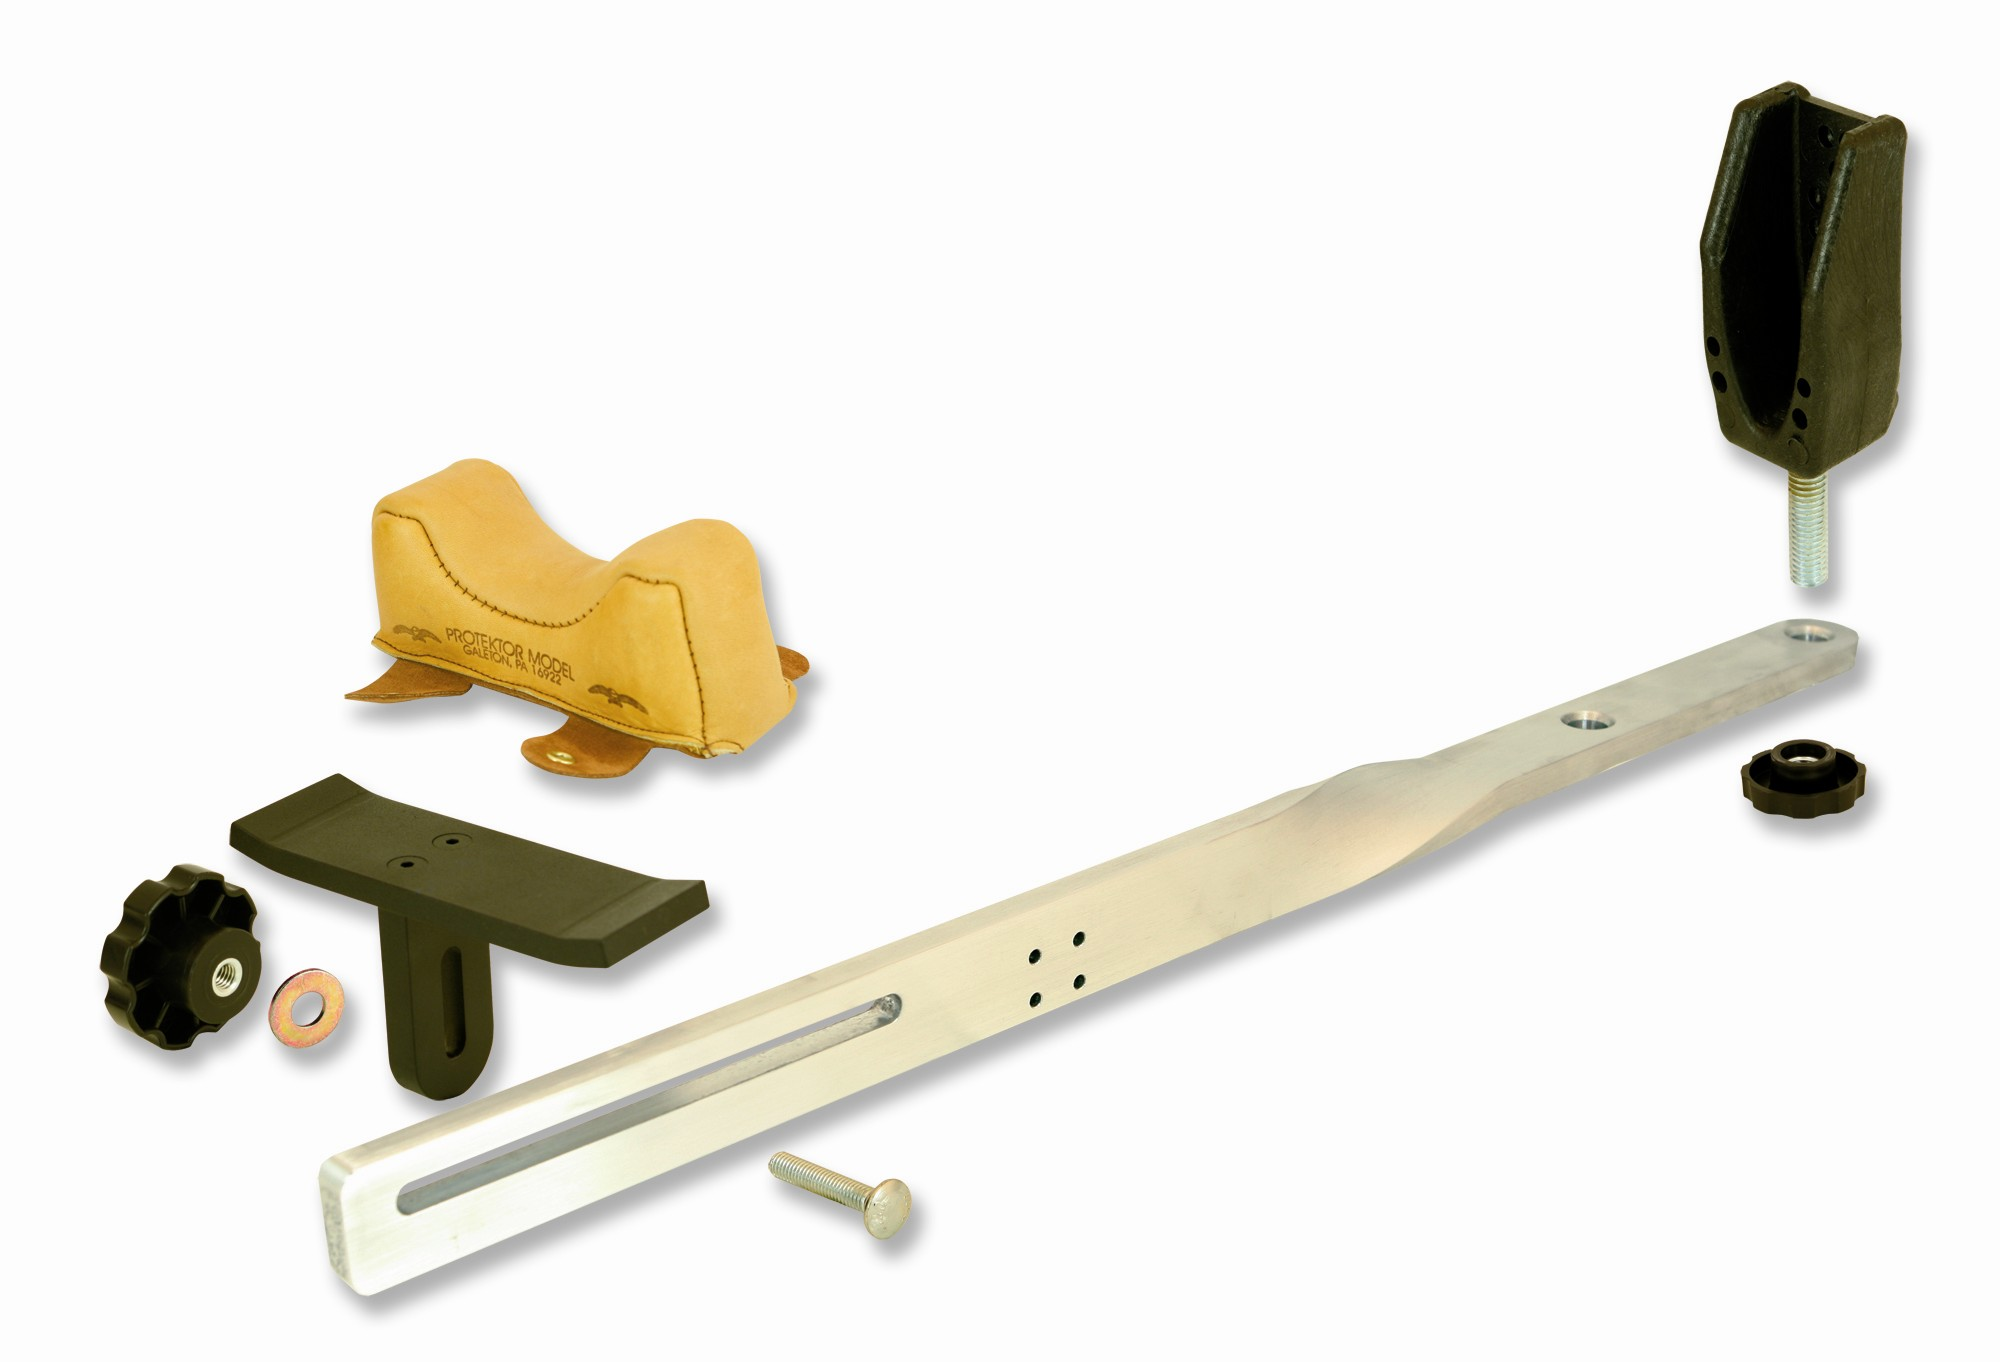 VersaCradle Shooting Rest Kit